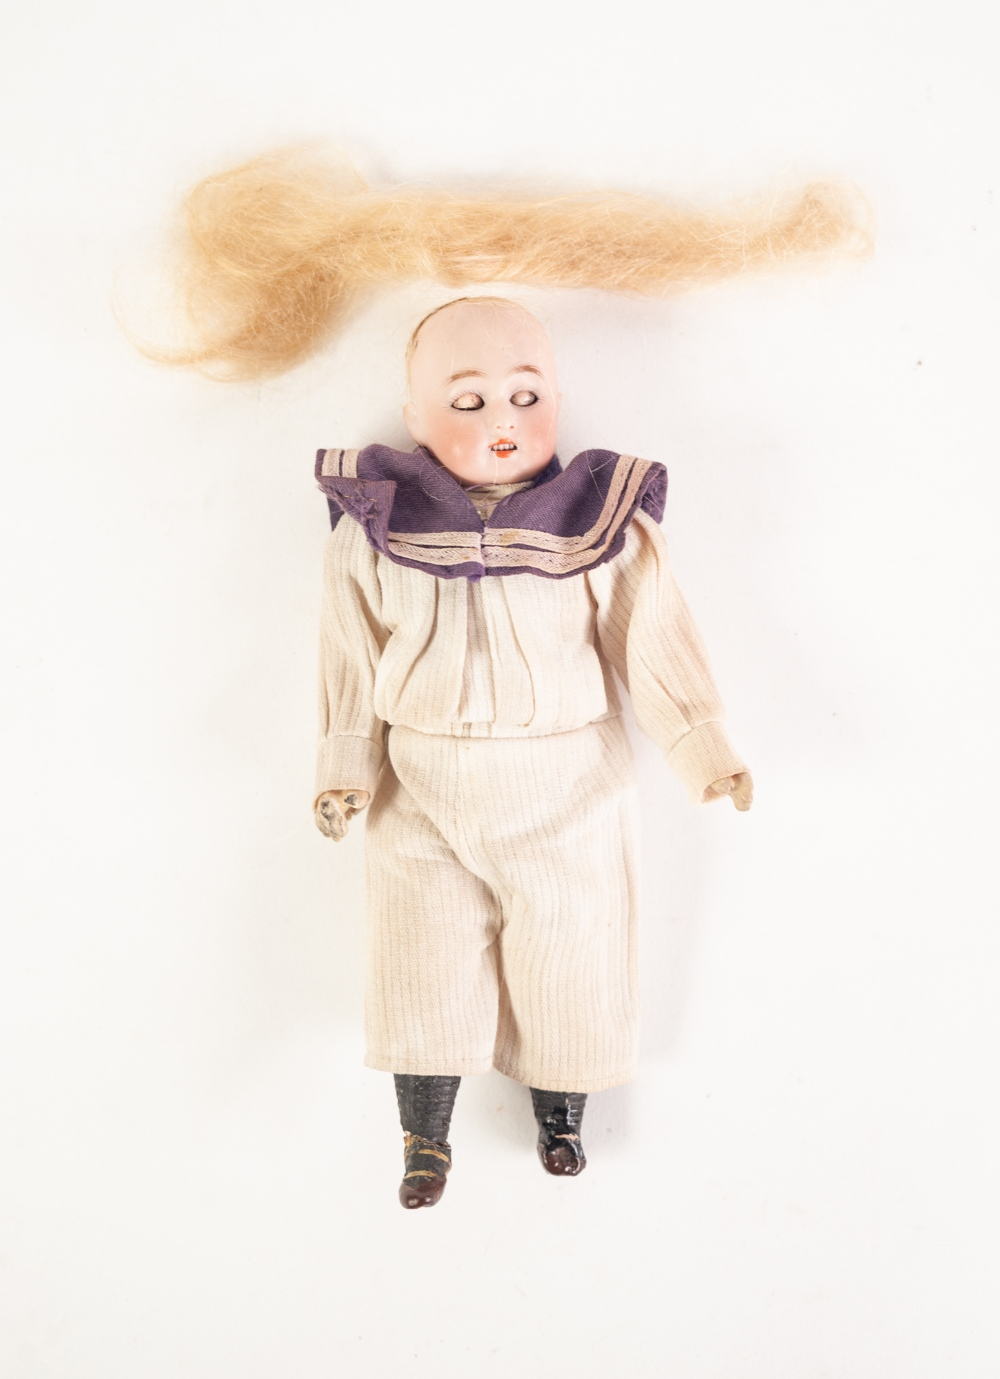 Lot 322 - A SMALL HARTMANN D.E.P. BISQUE HEAD 'GLOBE BABY' DOLL in original sailors clothing, composition body